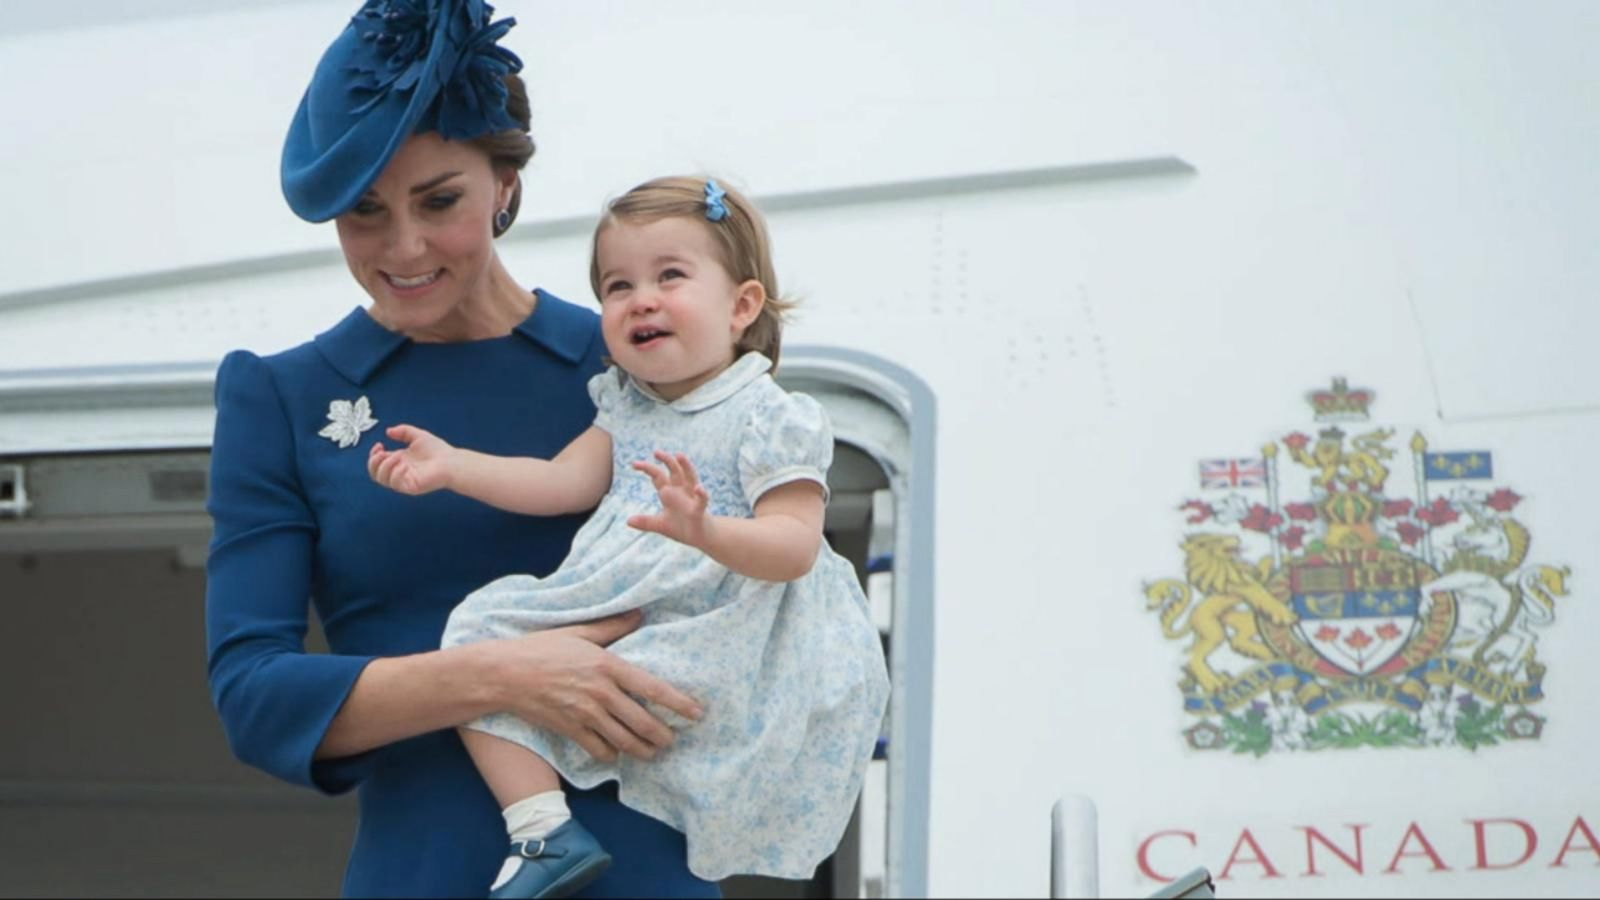 VIDEO: William and Kate Make Royal Landing in Canada